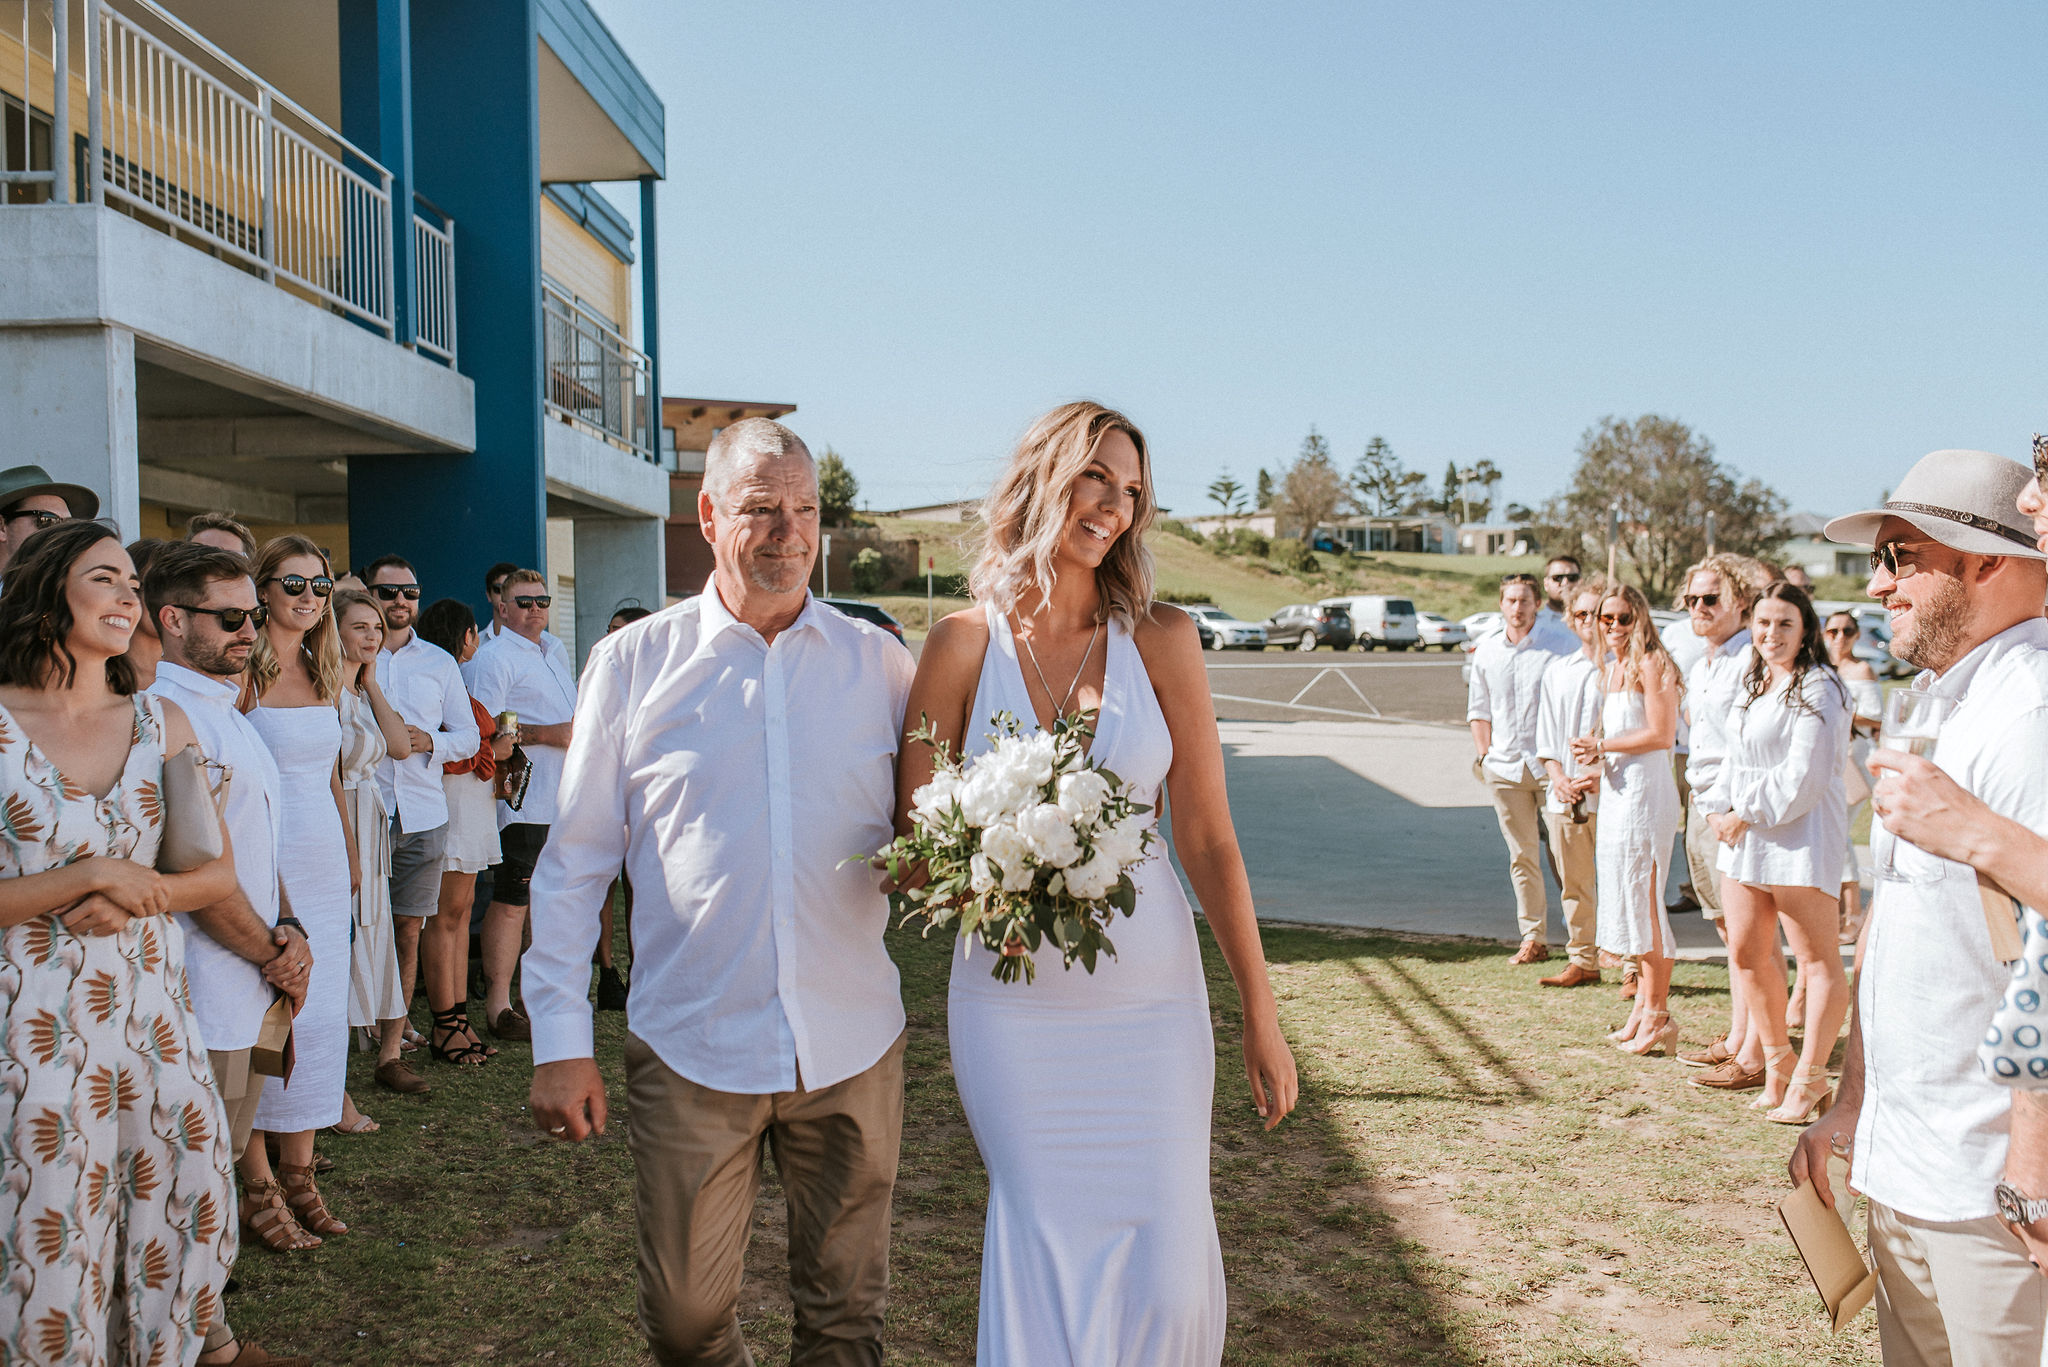 CULBURRA-BEACH-WEDDING-HEFFERNAN-PREVIEW-19.jpg